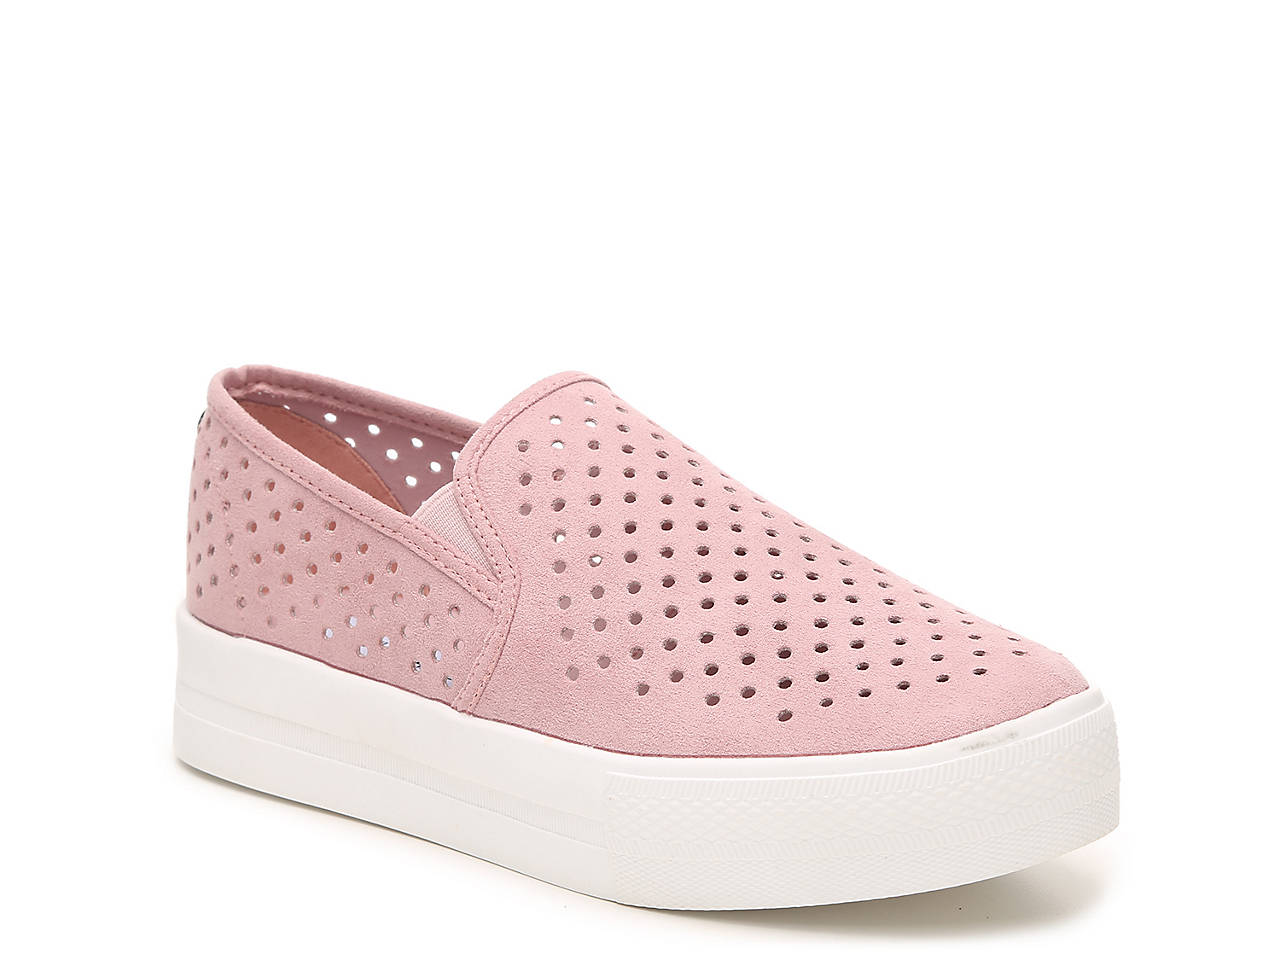 fe4d80da972 Steve Madden Owey Platform Slip-On Sneaker Women s Shoes